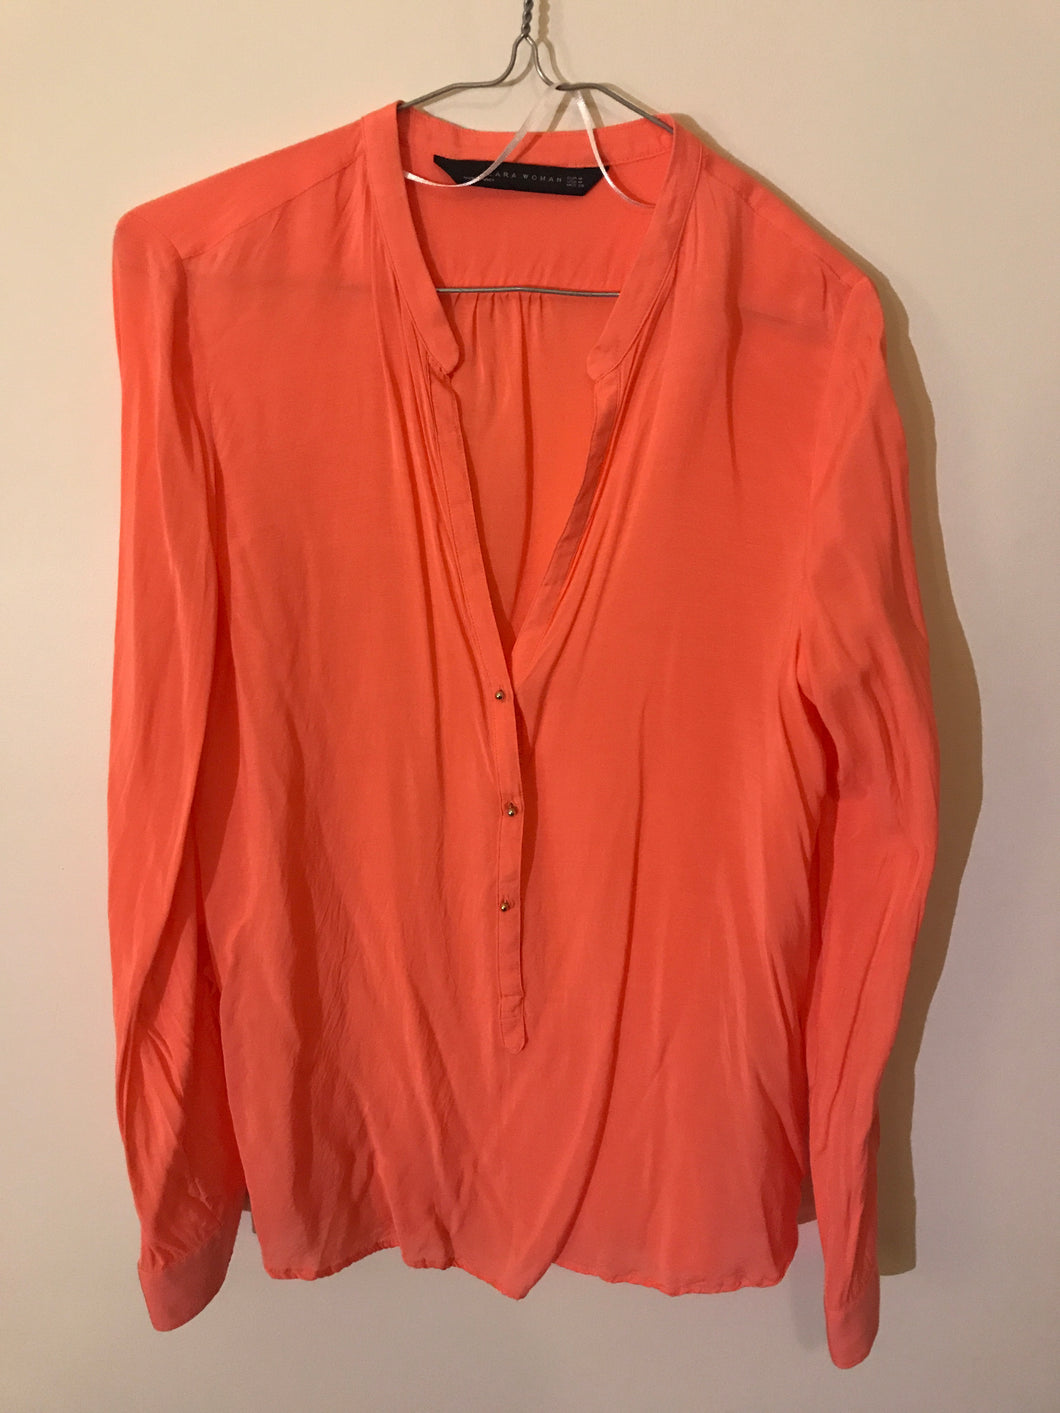 Zara Woman Coral long-sleeved shirt Size Medium (10 estimate)